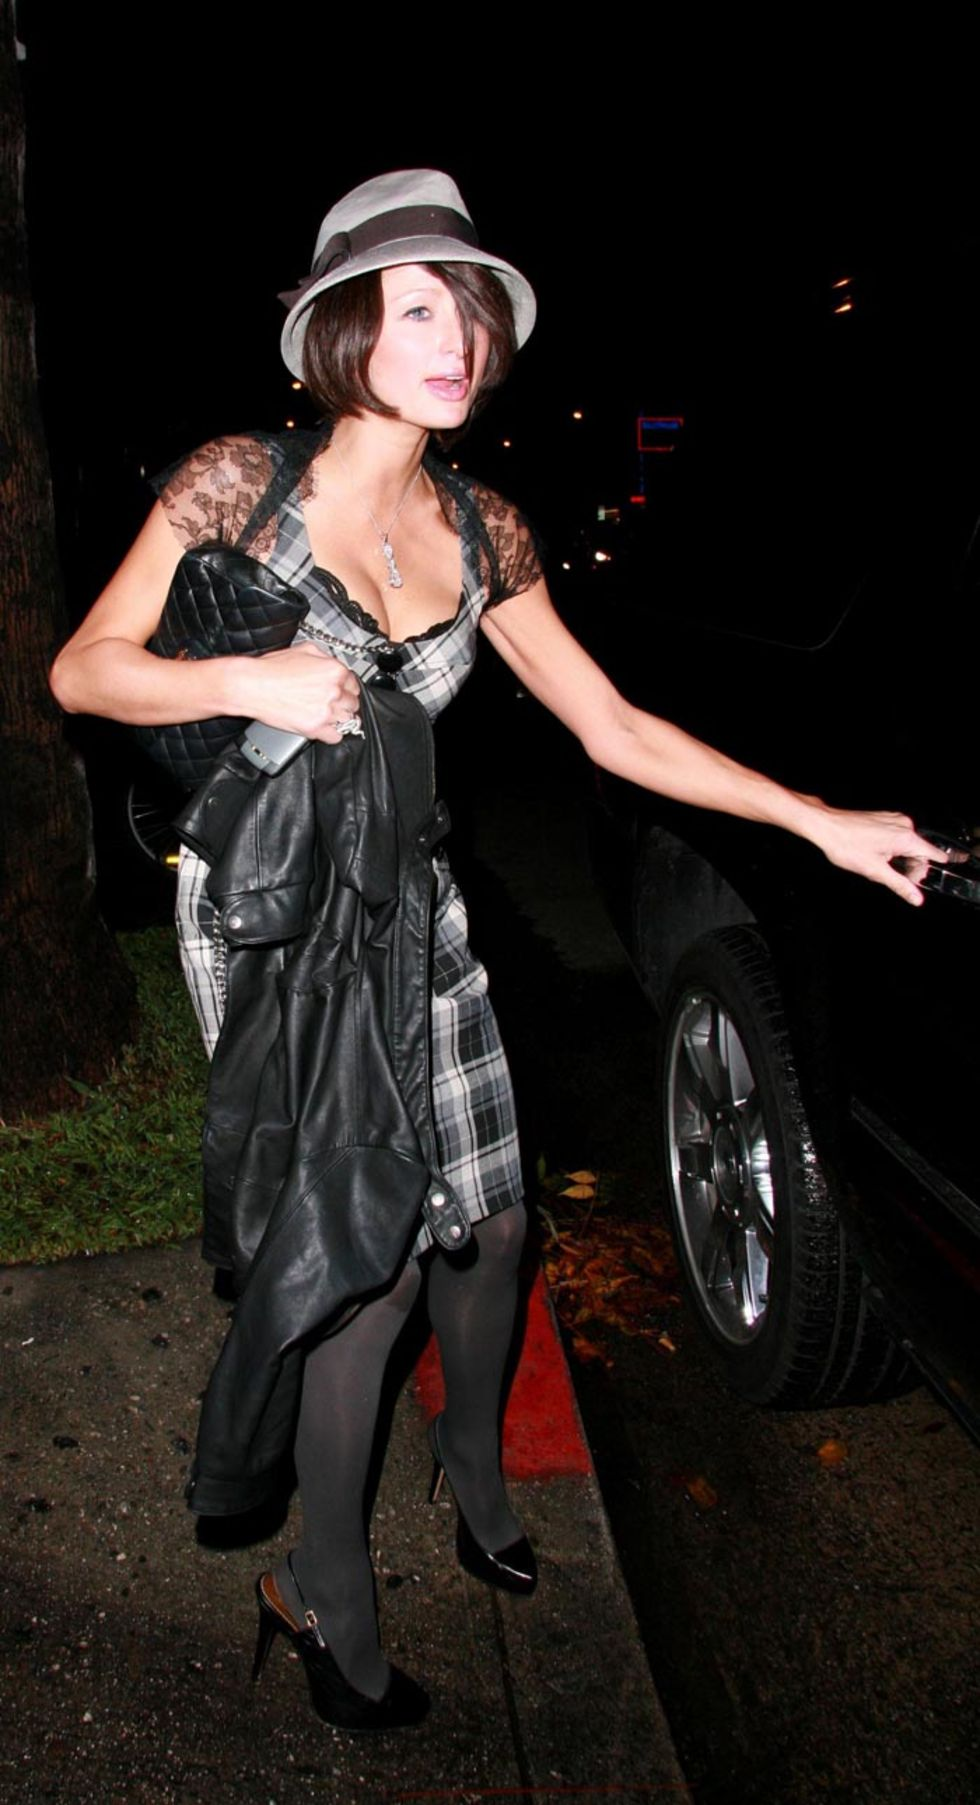 paris-hilton-cleavagy-candids-at-falcon-club-in-hollywood-01